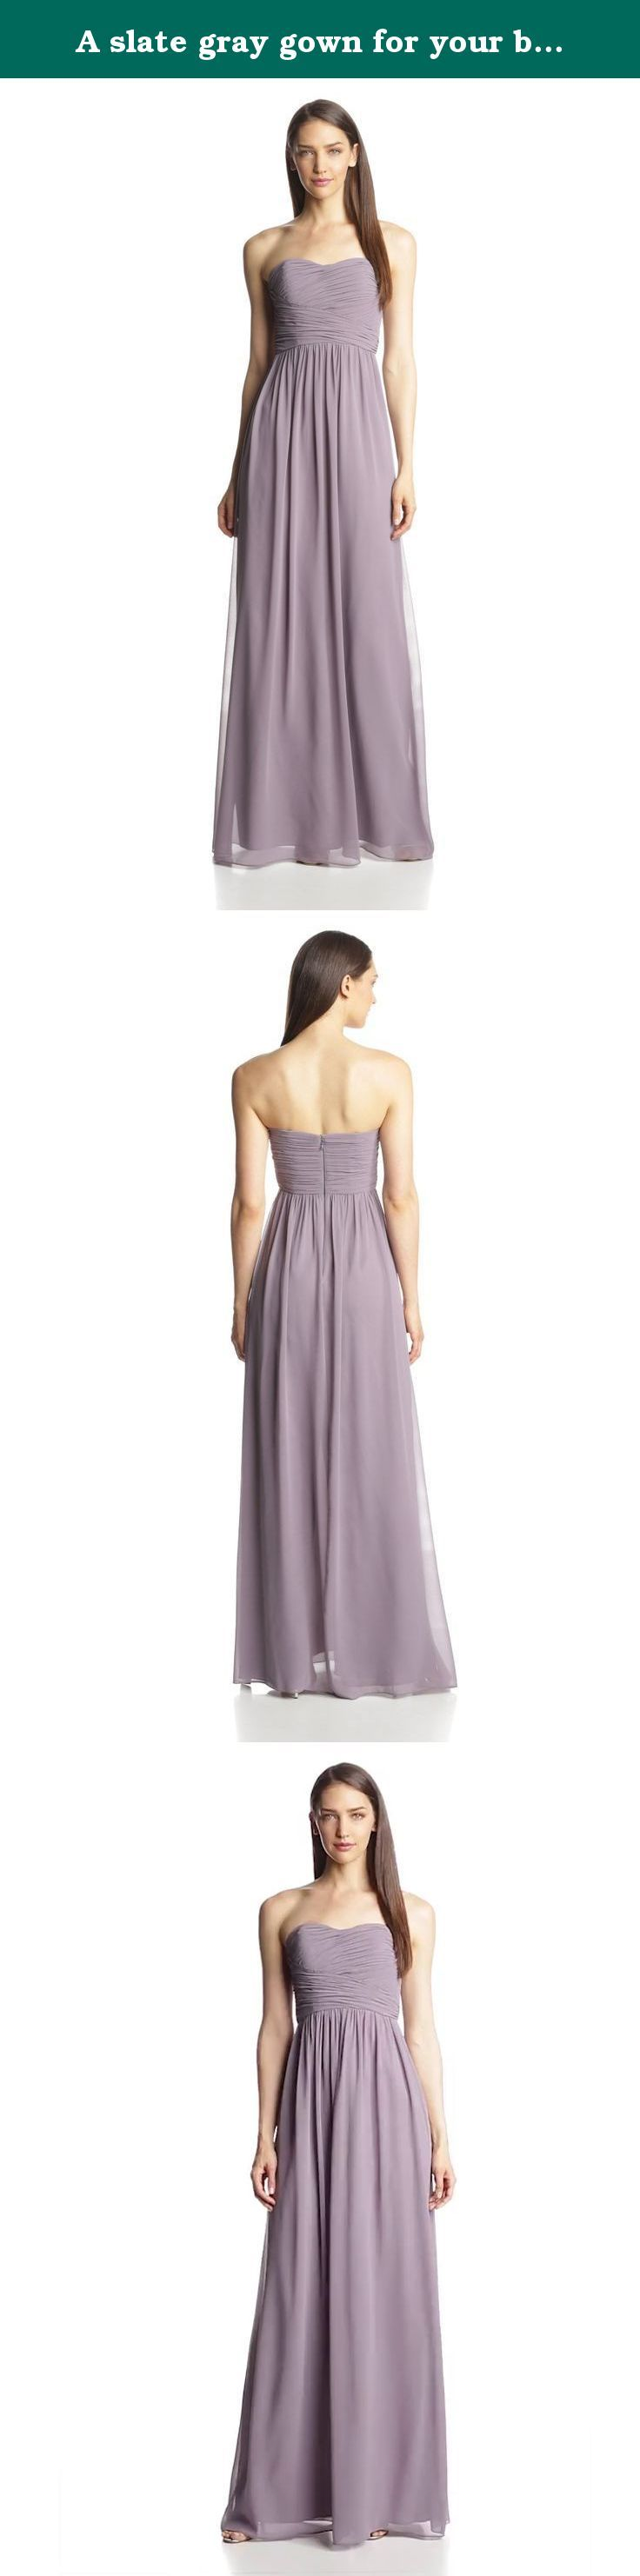 A slate gray gown for your bridesmaids. Subtle ruching highlights this flowy strapless sweetheart chiffon dress with a floor length skirt.